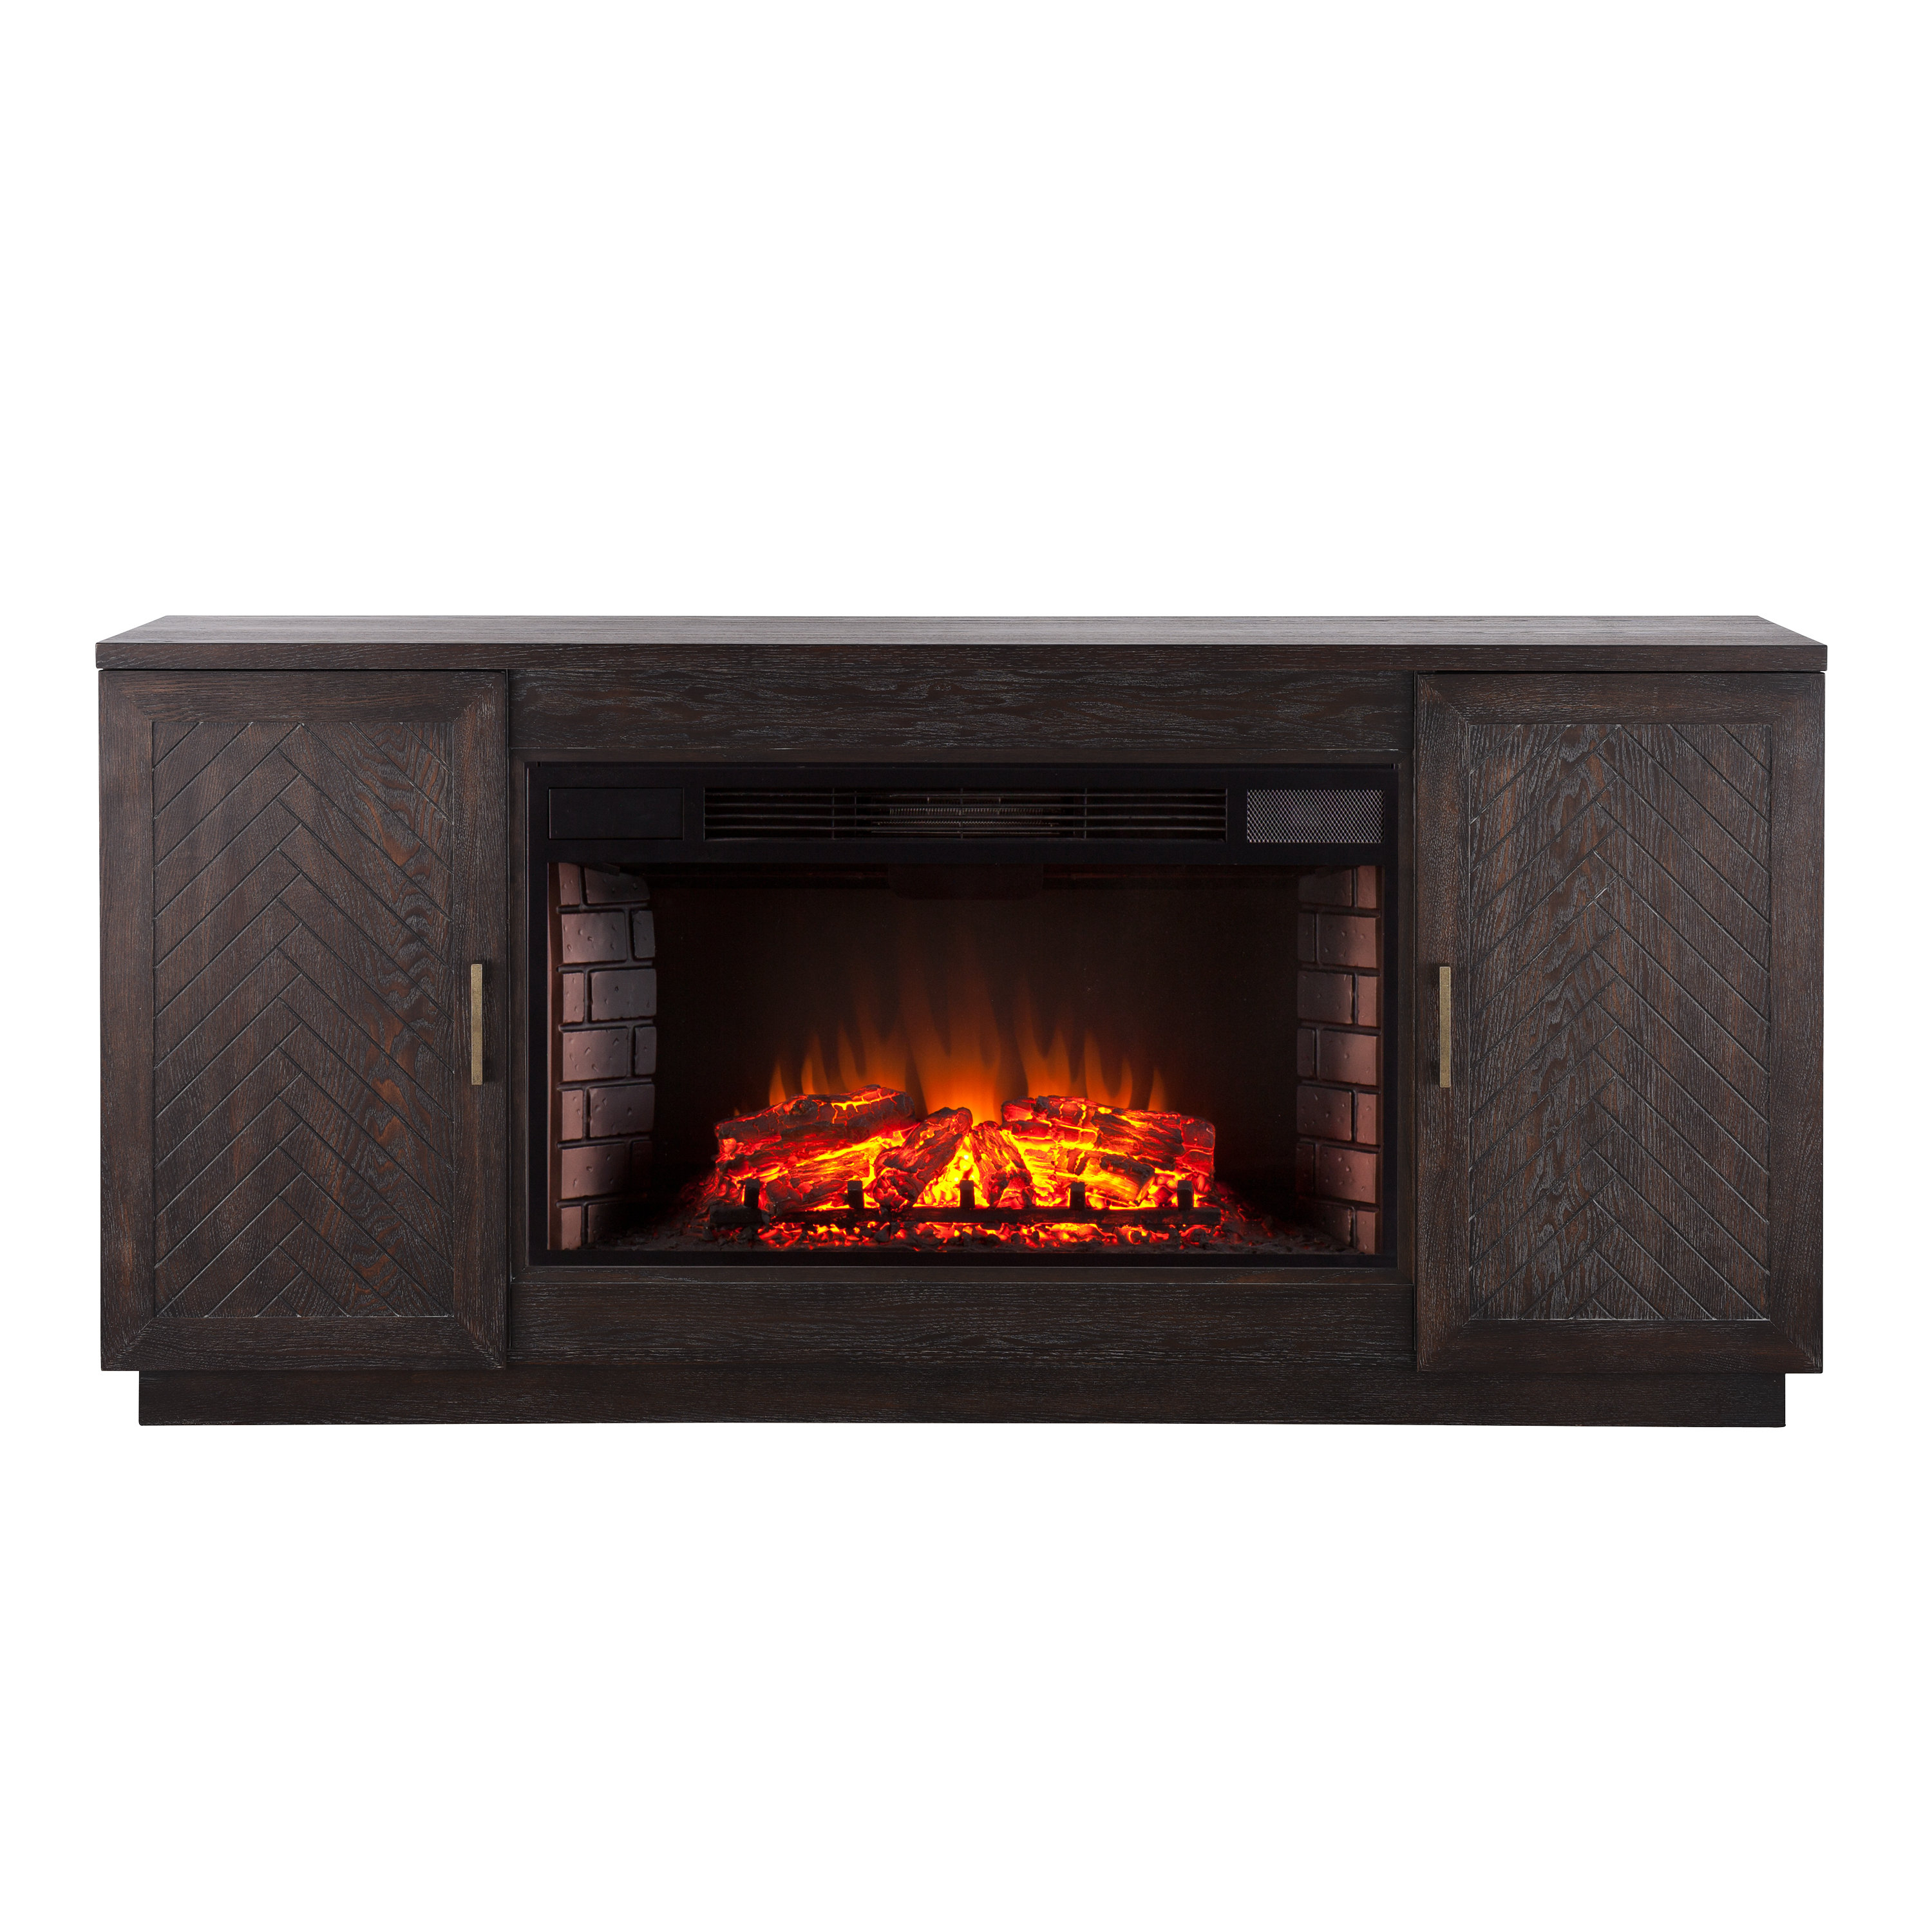 "Joss And Main Tv Stands Regarding Famous Scriber Widescreen Tv Stand For Tvs Up To 65"" With Fireplace (View 11 of 20)"